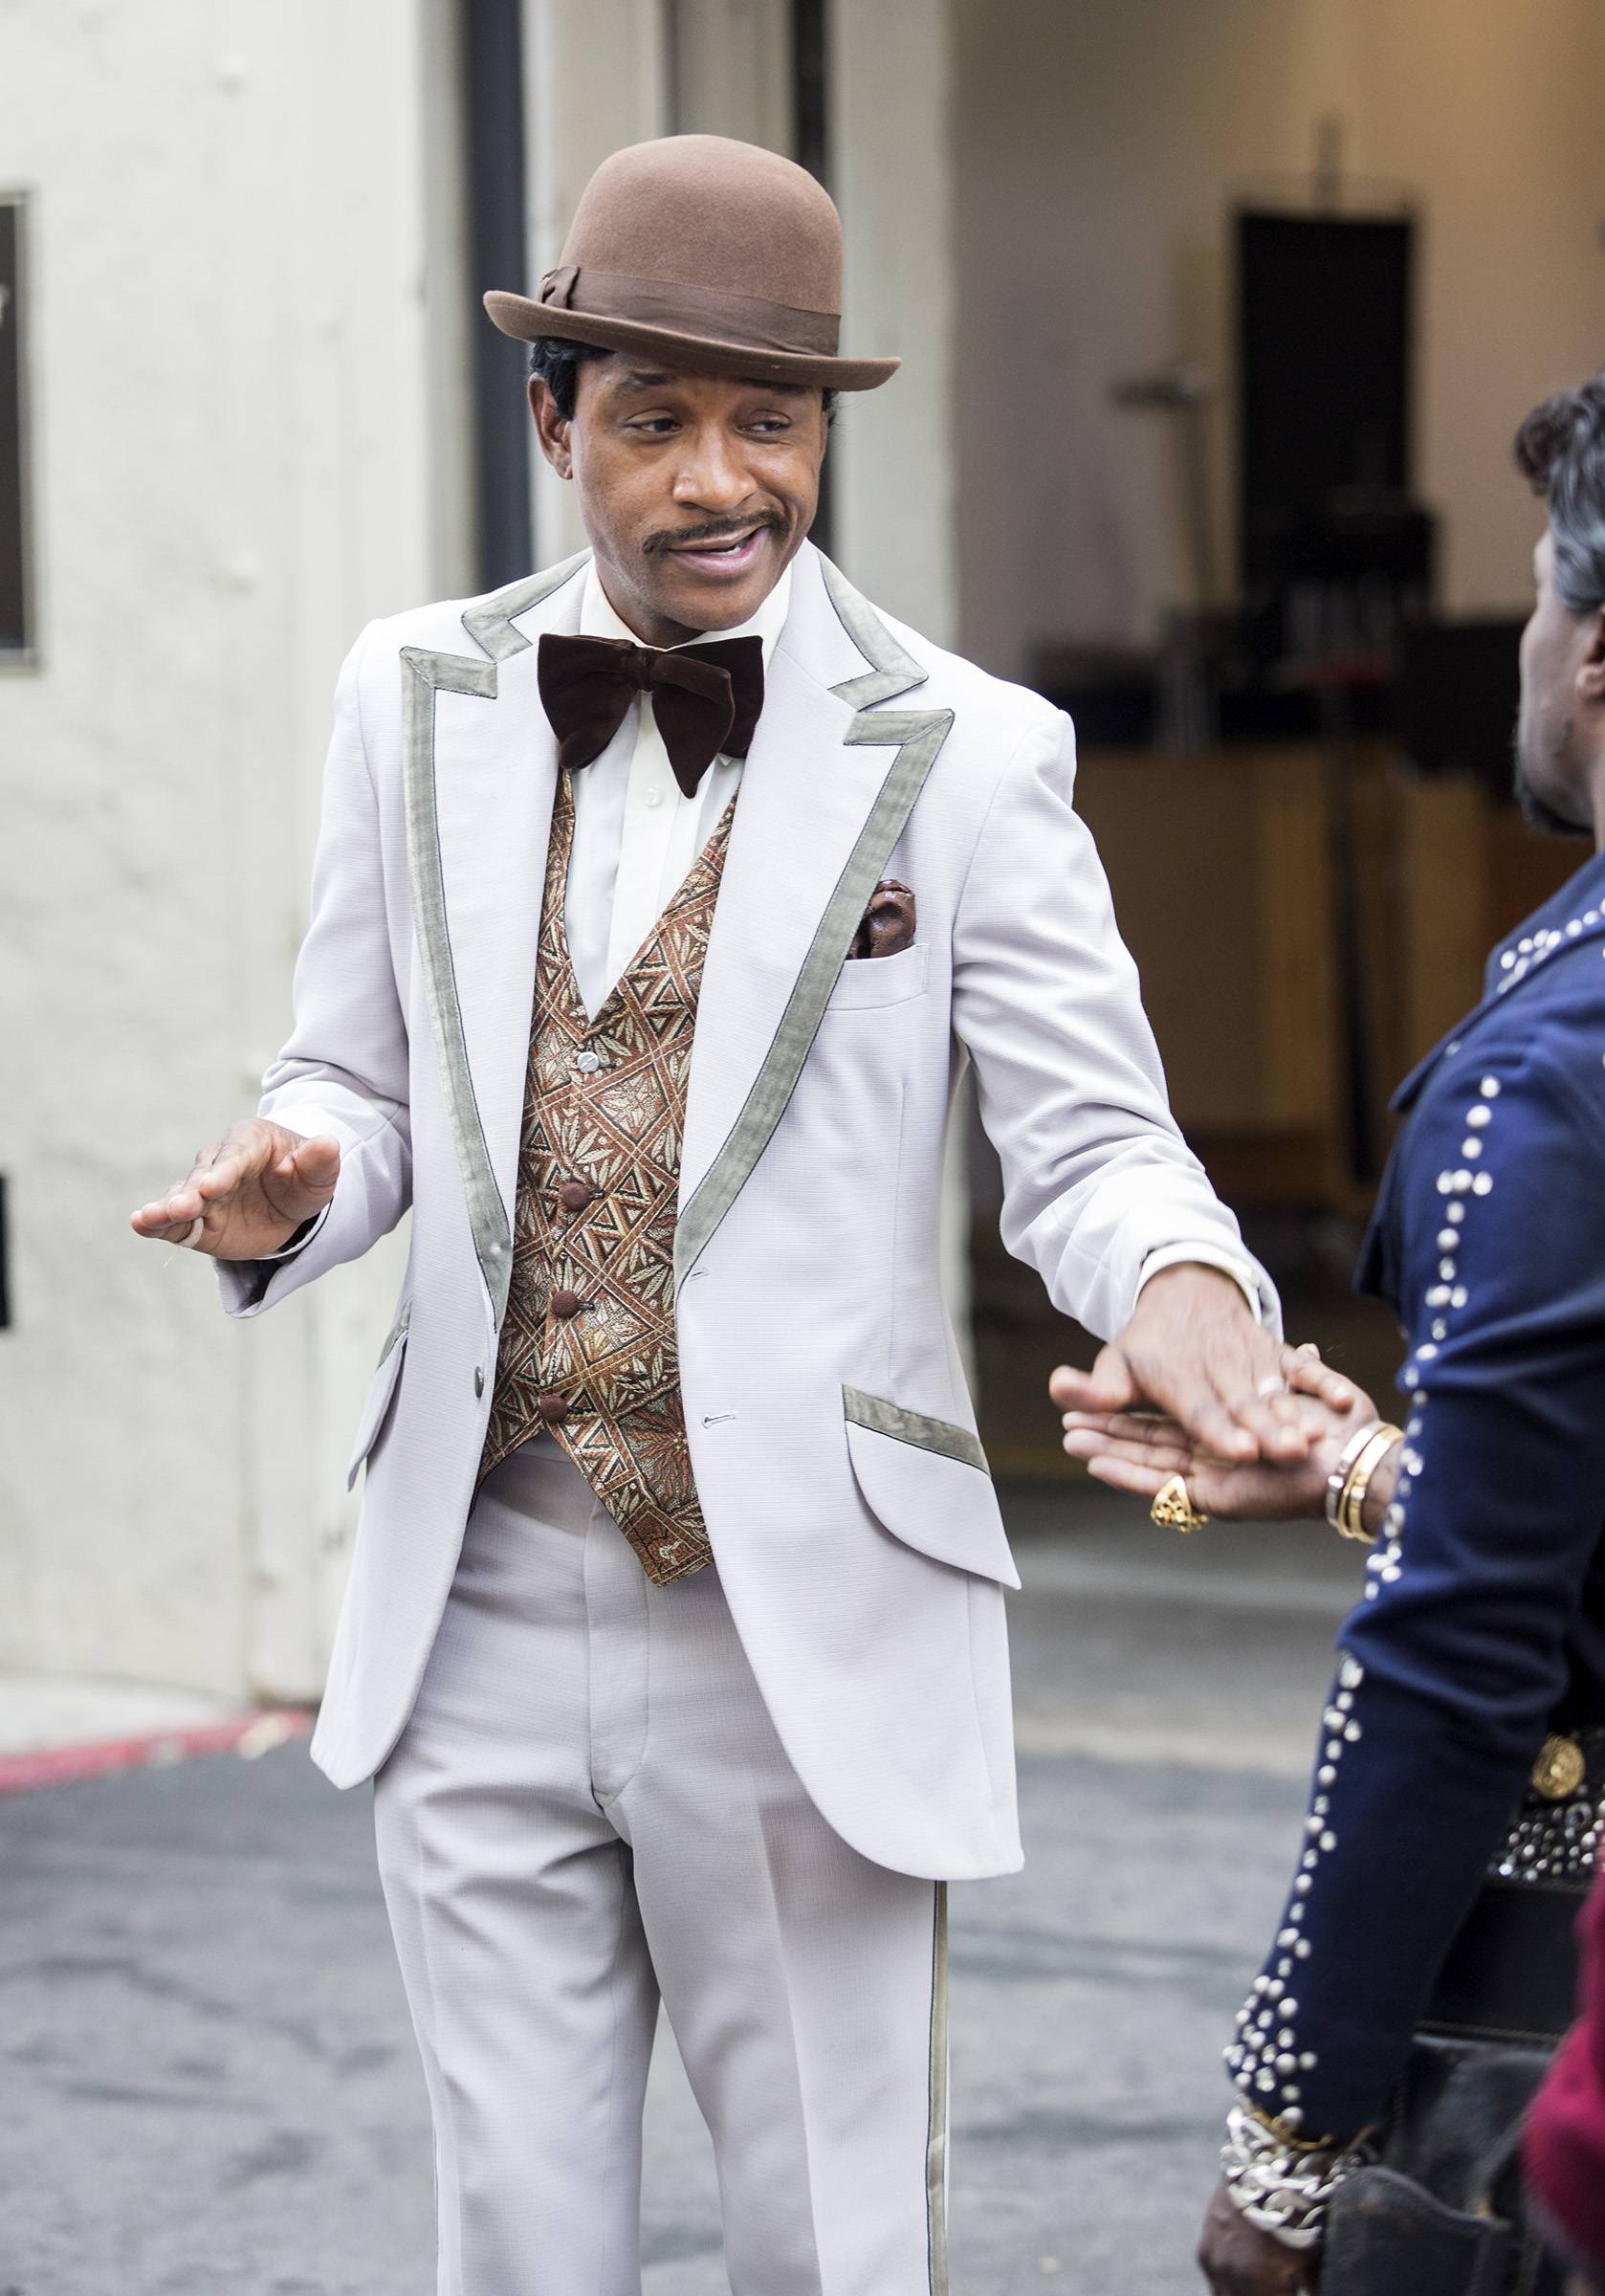 He's definitely channeling Sammy Davis Jr. with this one. - (Photo: BET)